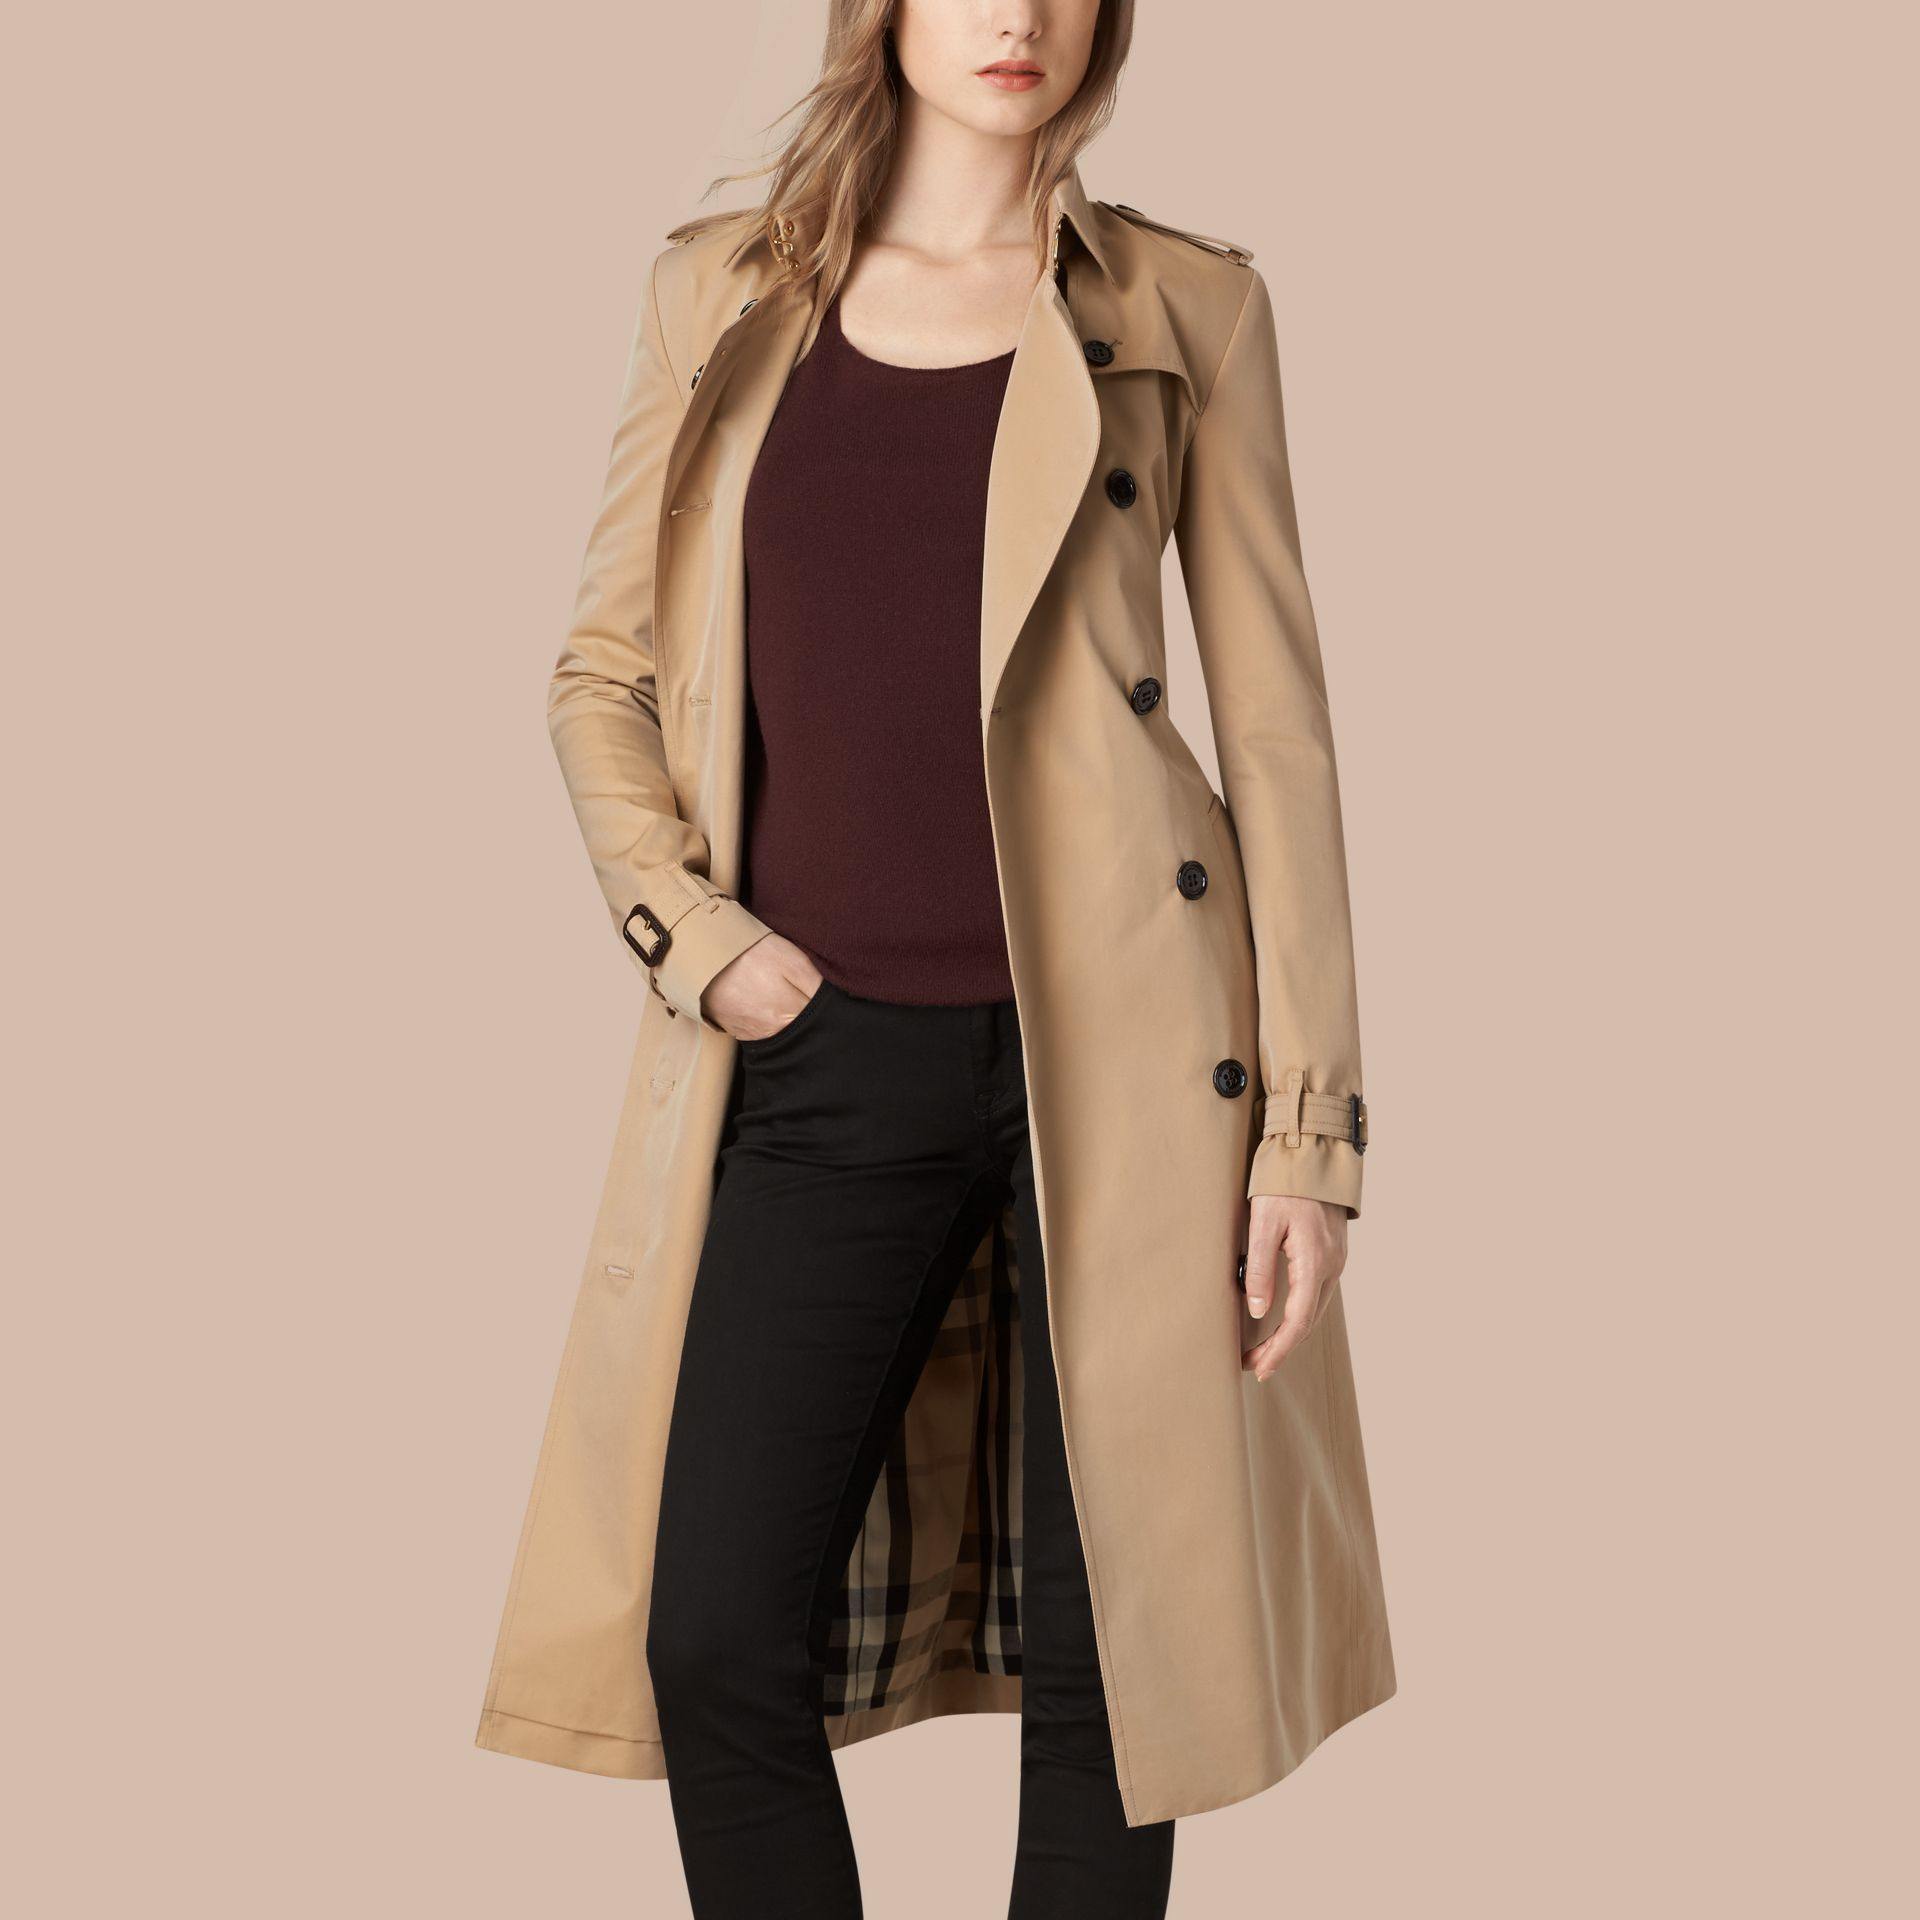 Cotton Gabardine Trench Coat - Women | Burberry Singapore - gallery image 2